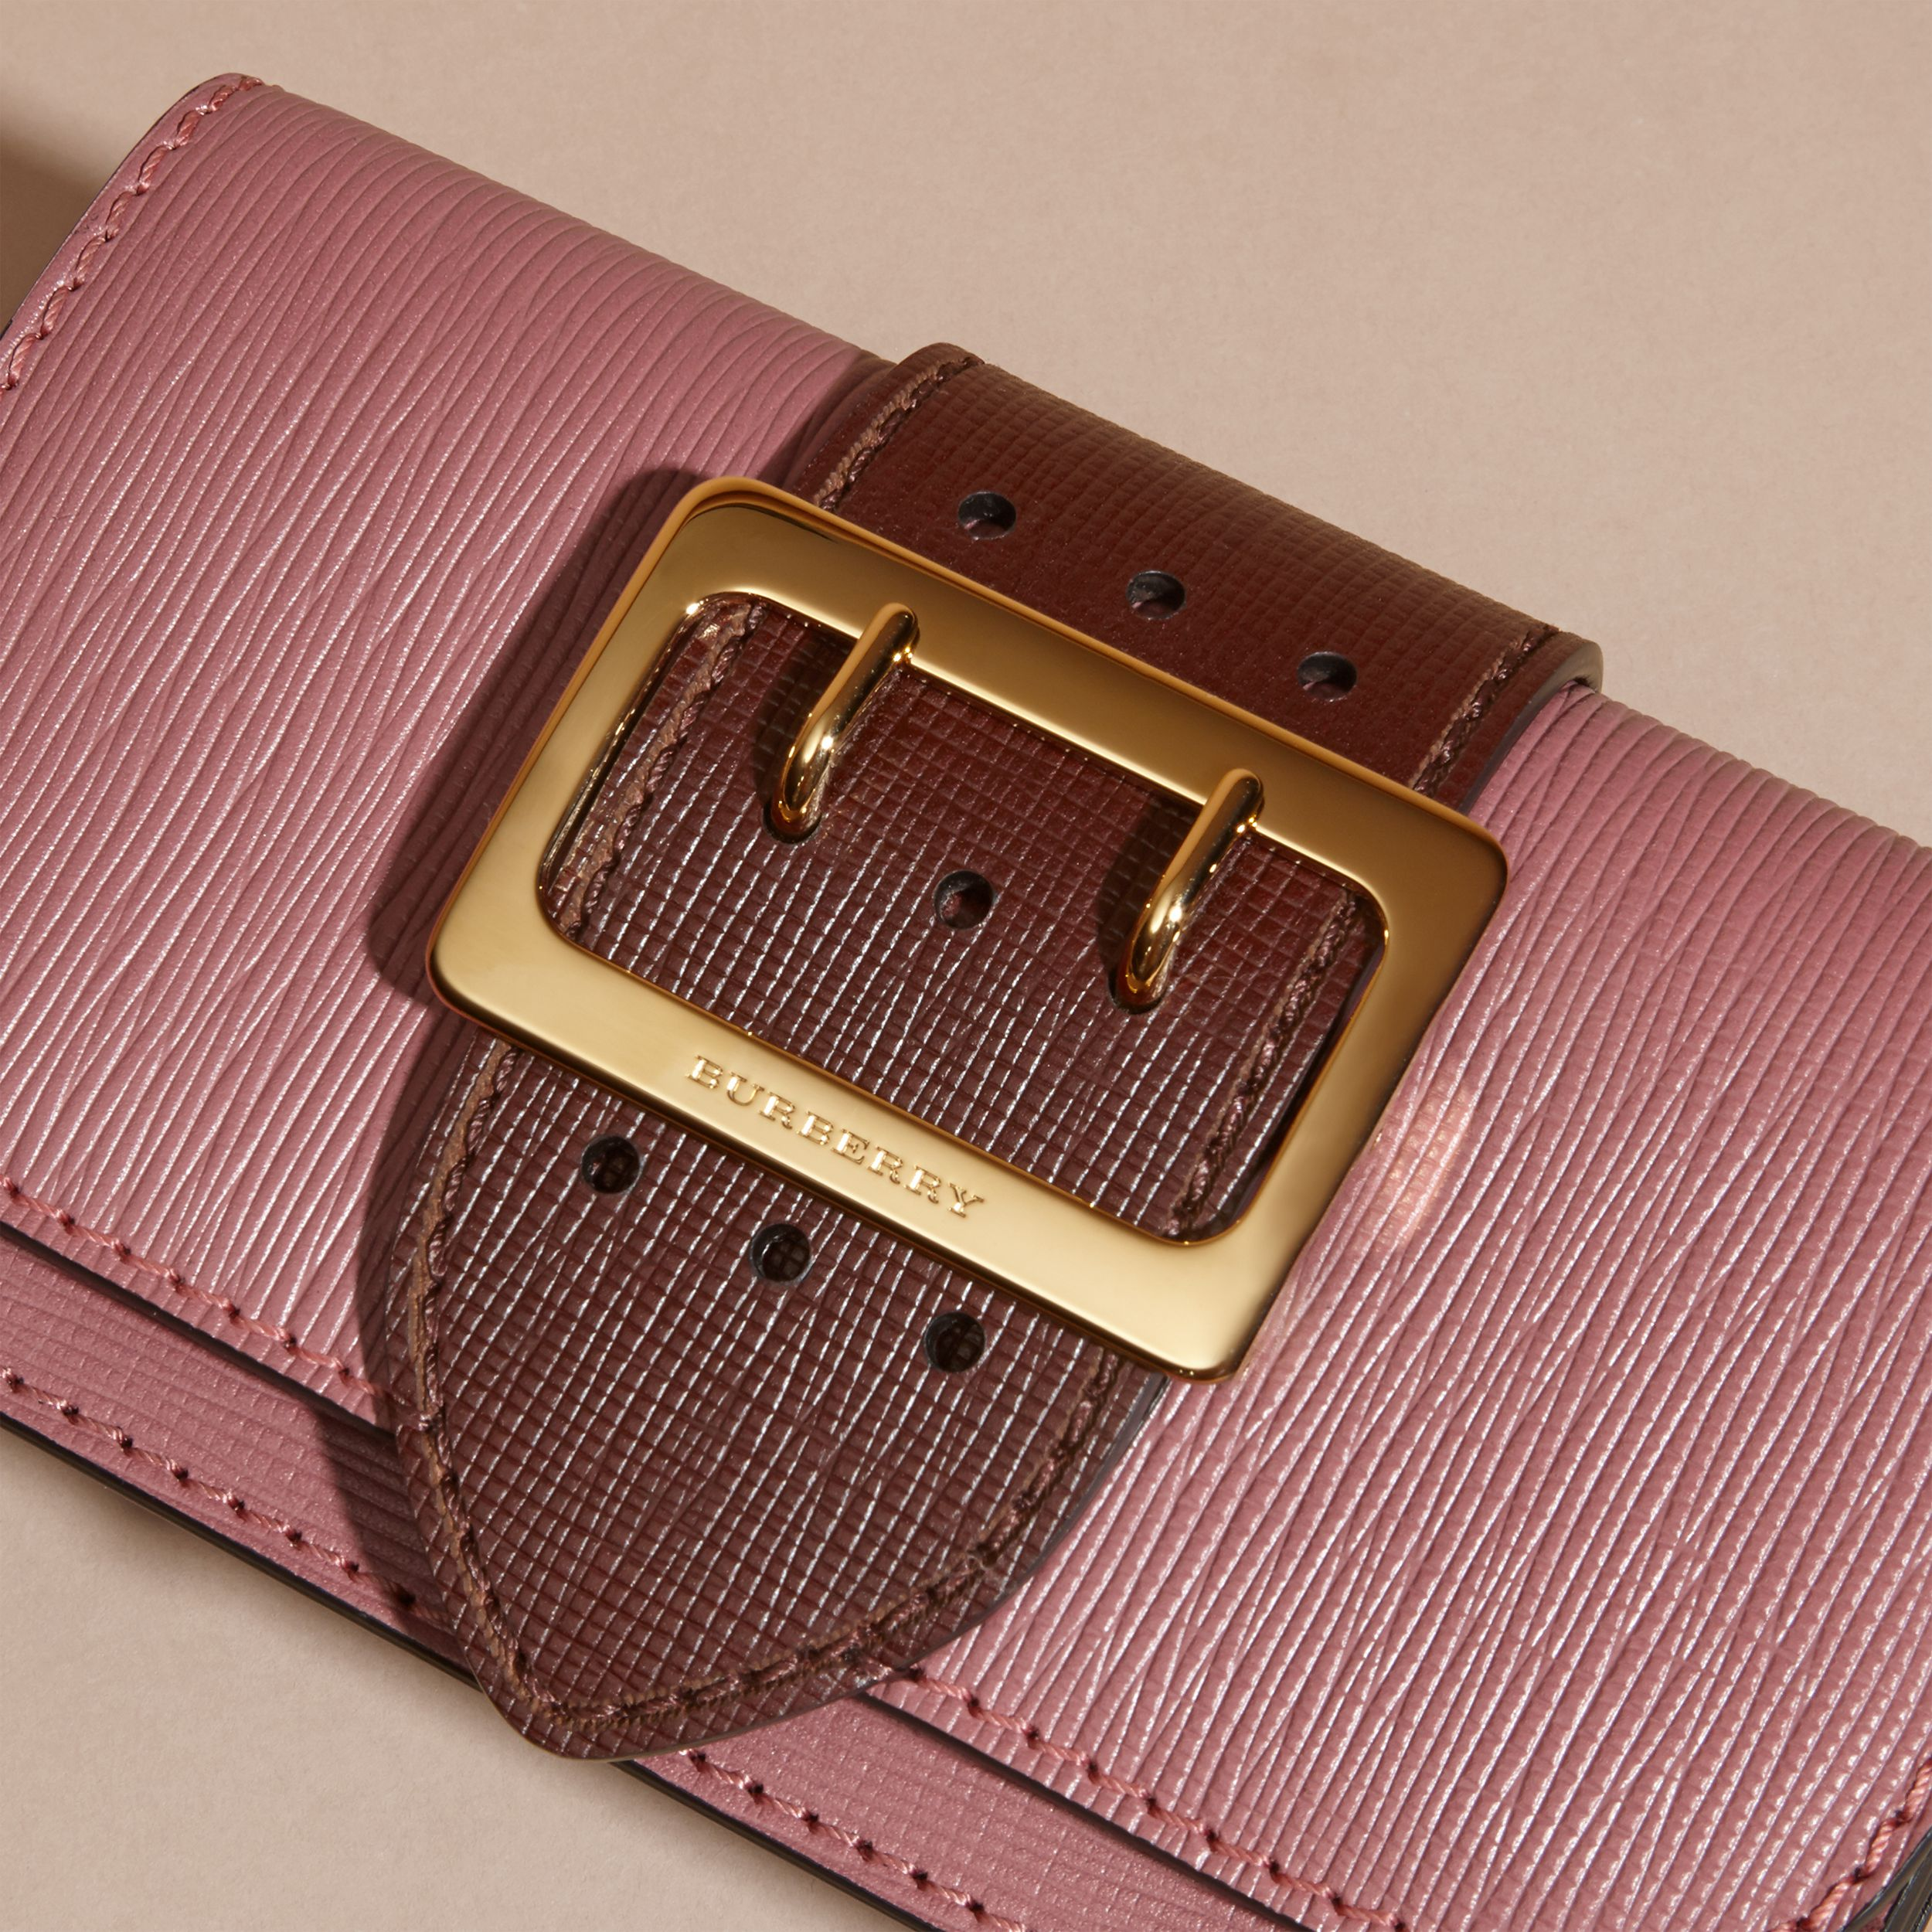 The Small Buckle Bag in Textured Leather in Dusky Pink/ Burgundy | Burberry United States - 2